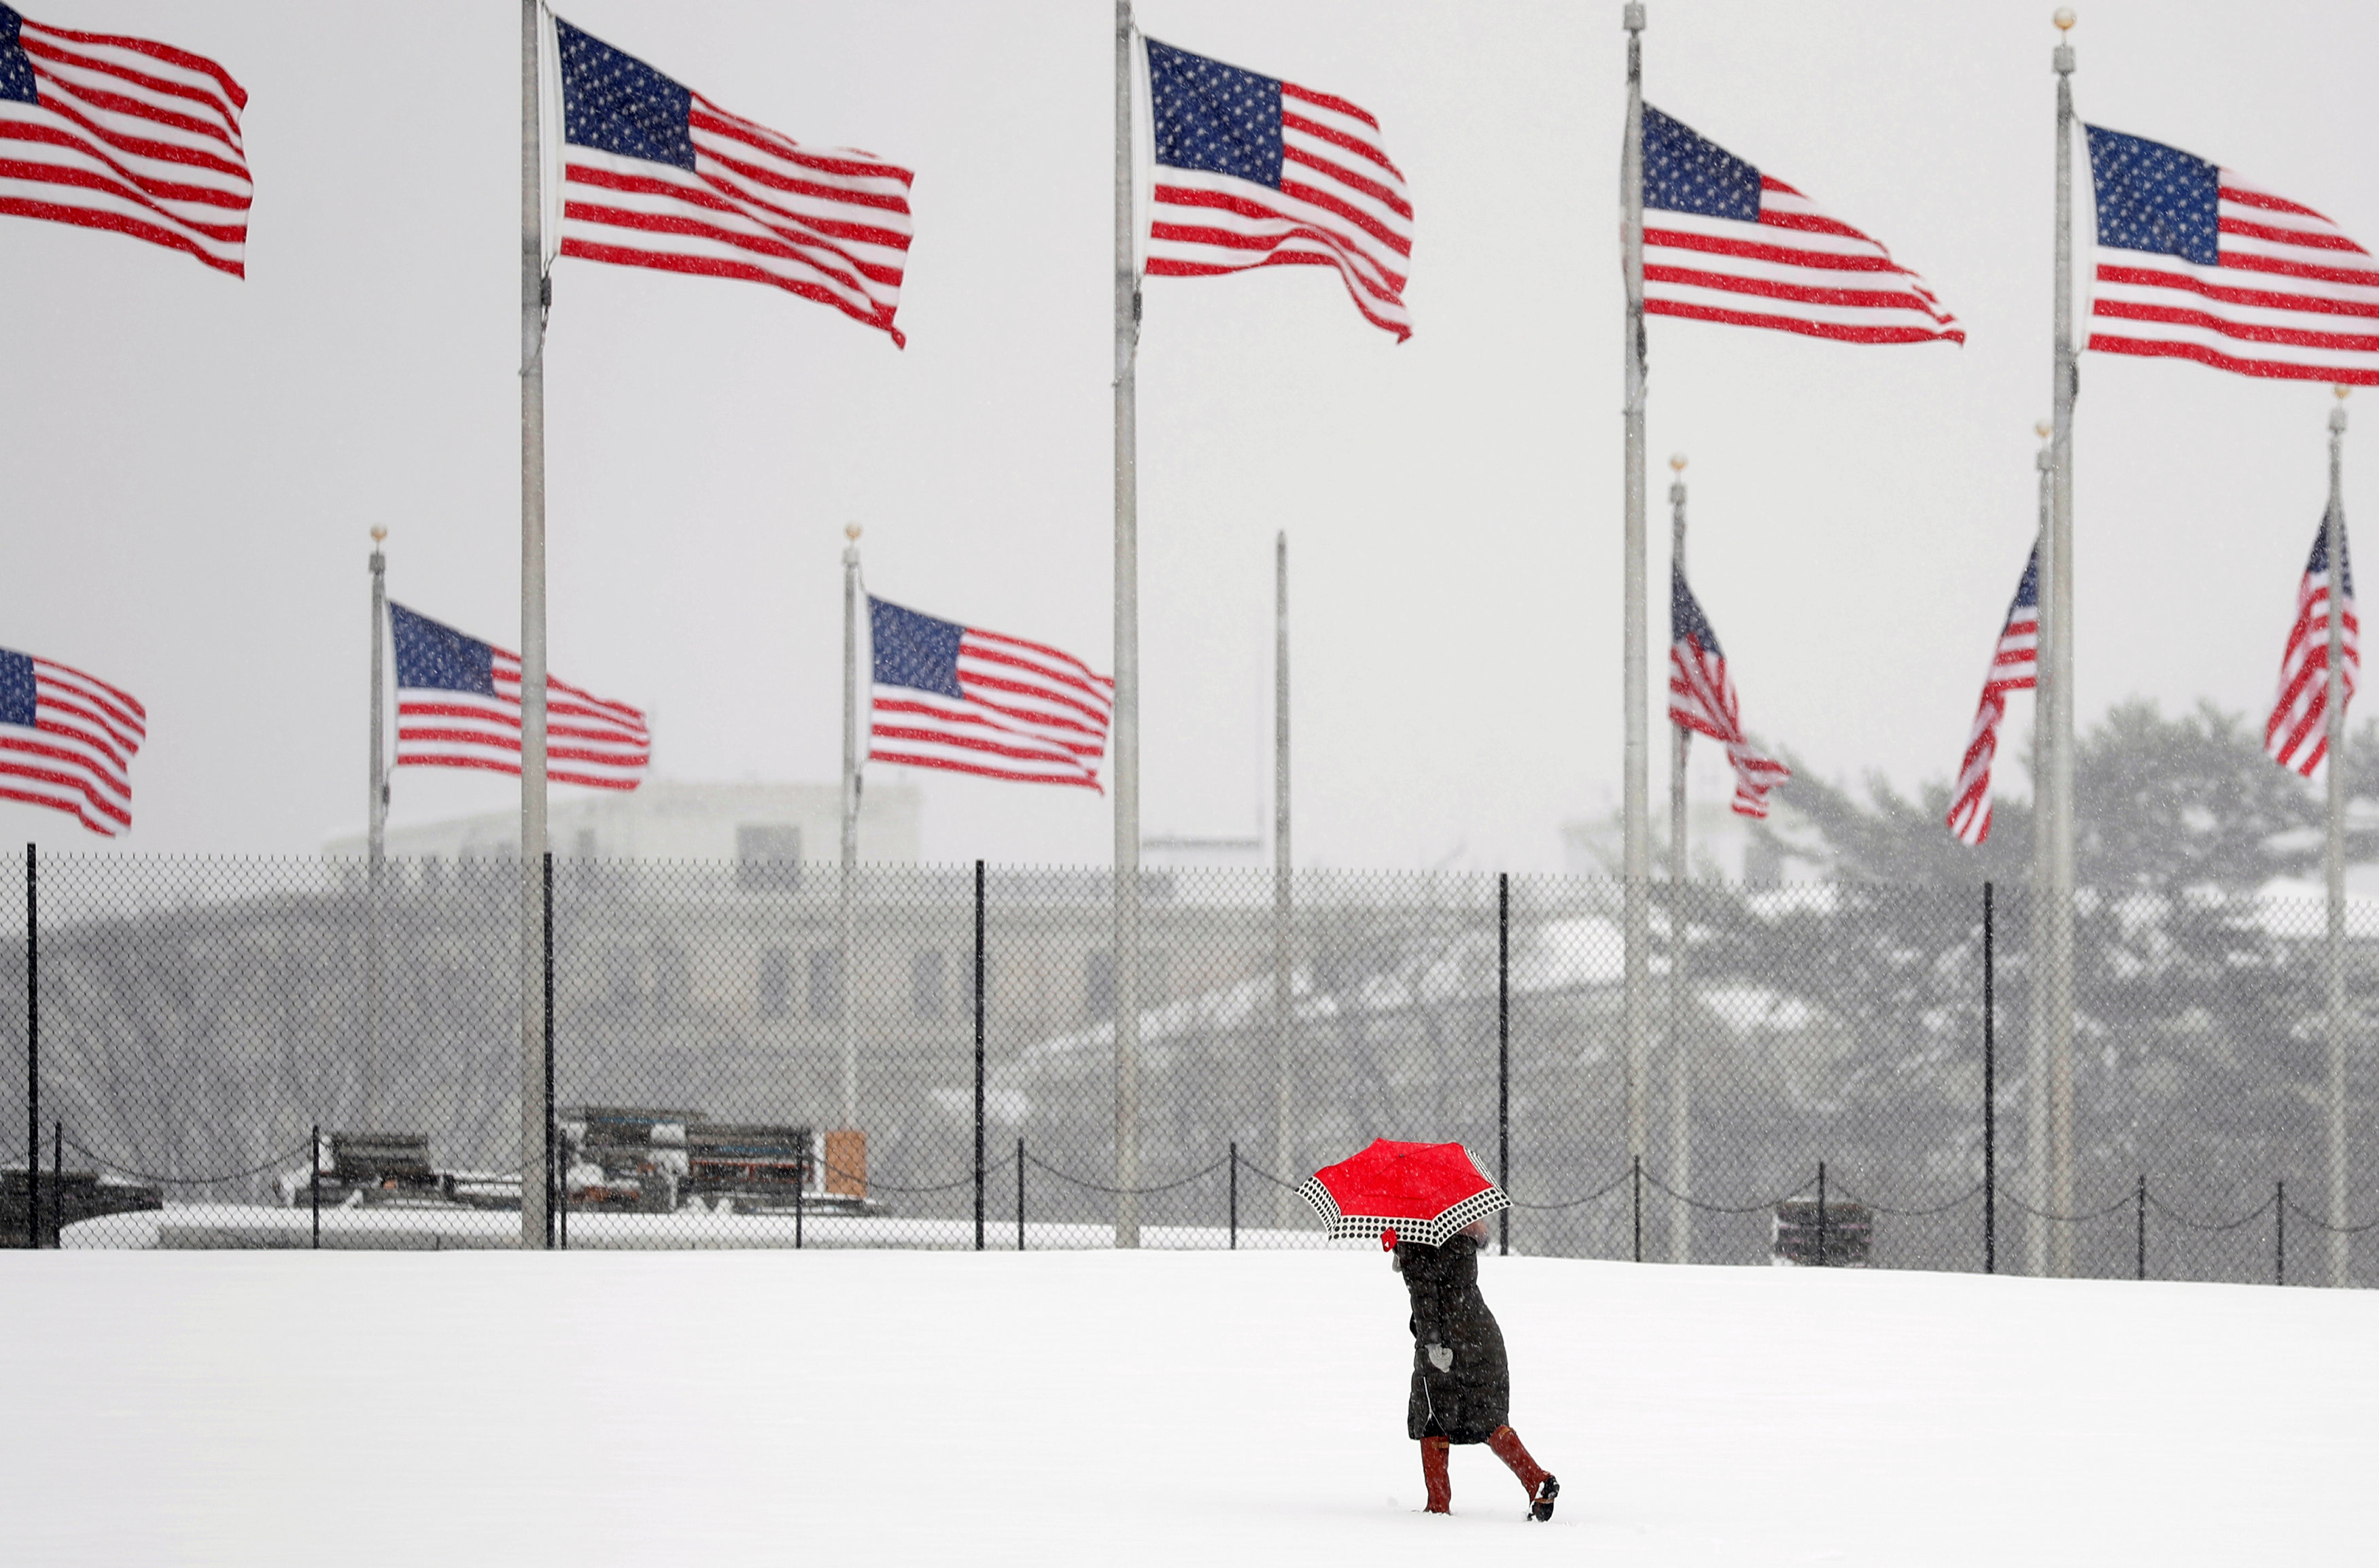 A woman holds an umbrella as she walks toward the Washington Monument during a snowstorm in Washington, U.S., March 21, 2018. REUTERS/Kevin Lamarque